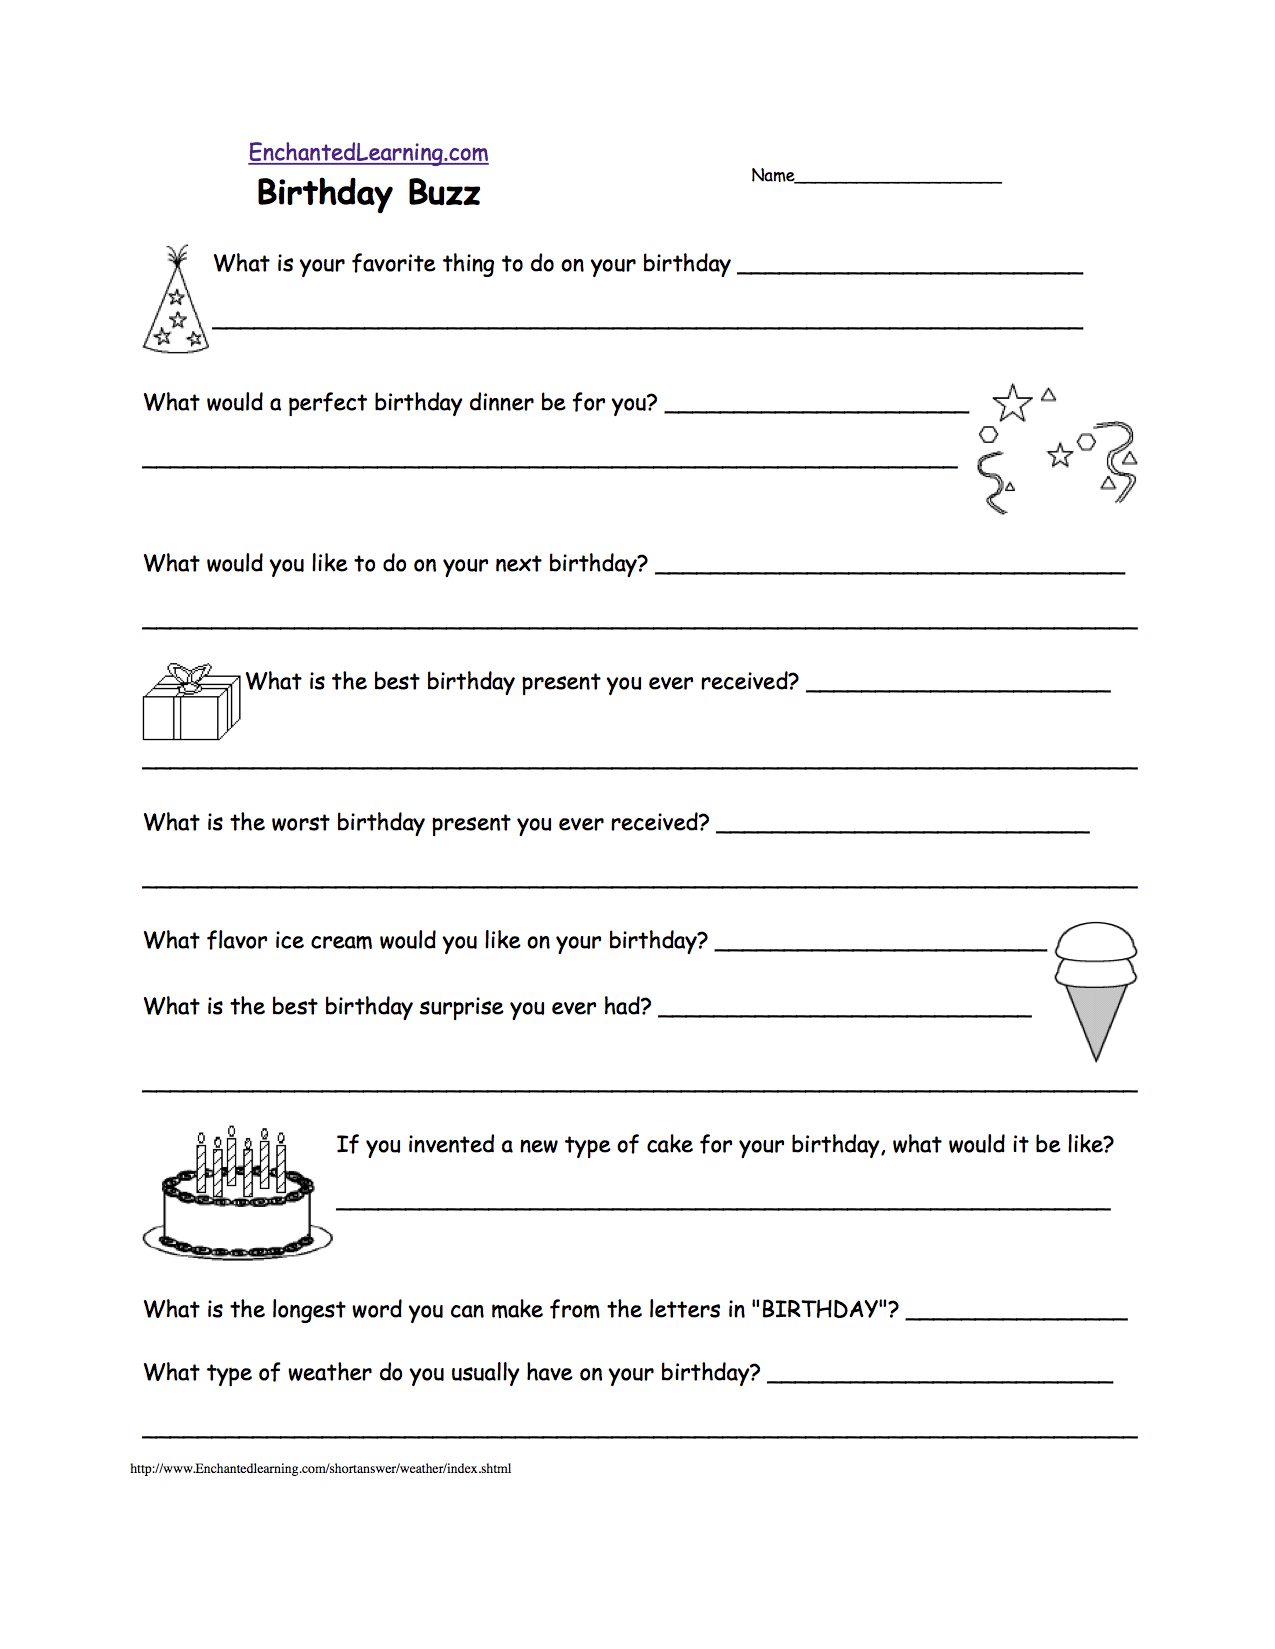 short answer quizzes printable com or go to the answers birthday